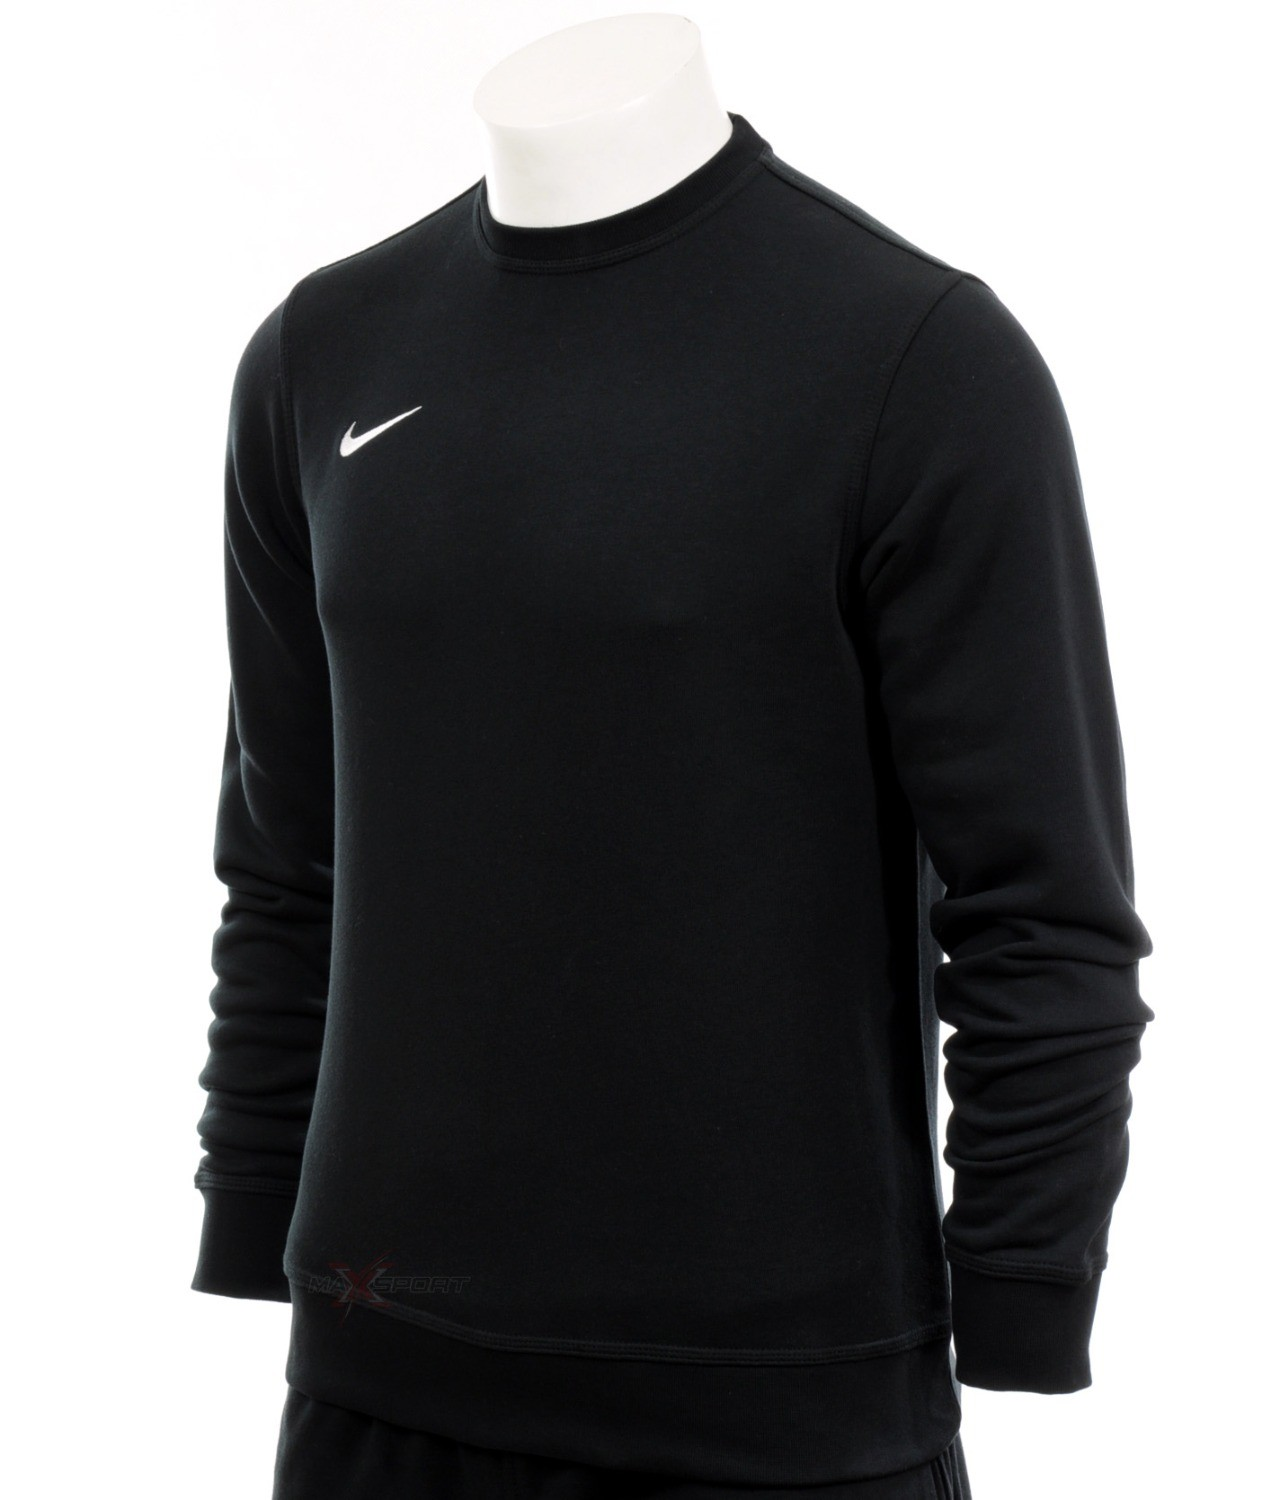 0933 nike herren rundhals pullover sweatshirt gr e s m l xl xxl ebay. Black Bedroom Furniture Sets. Home Design Ideas